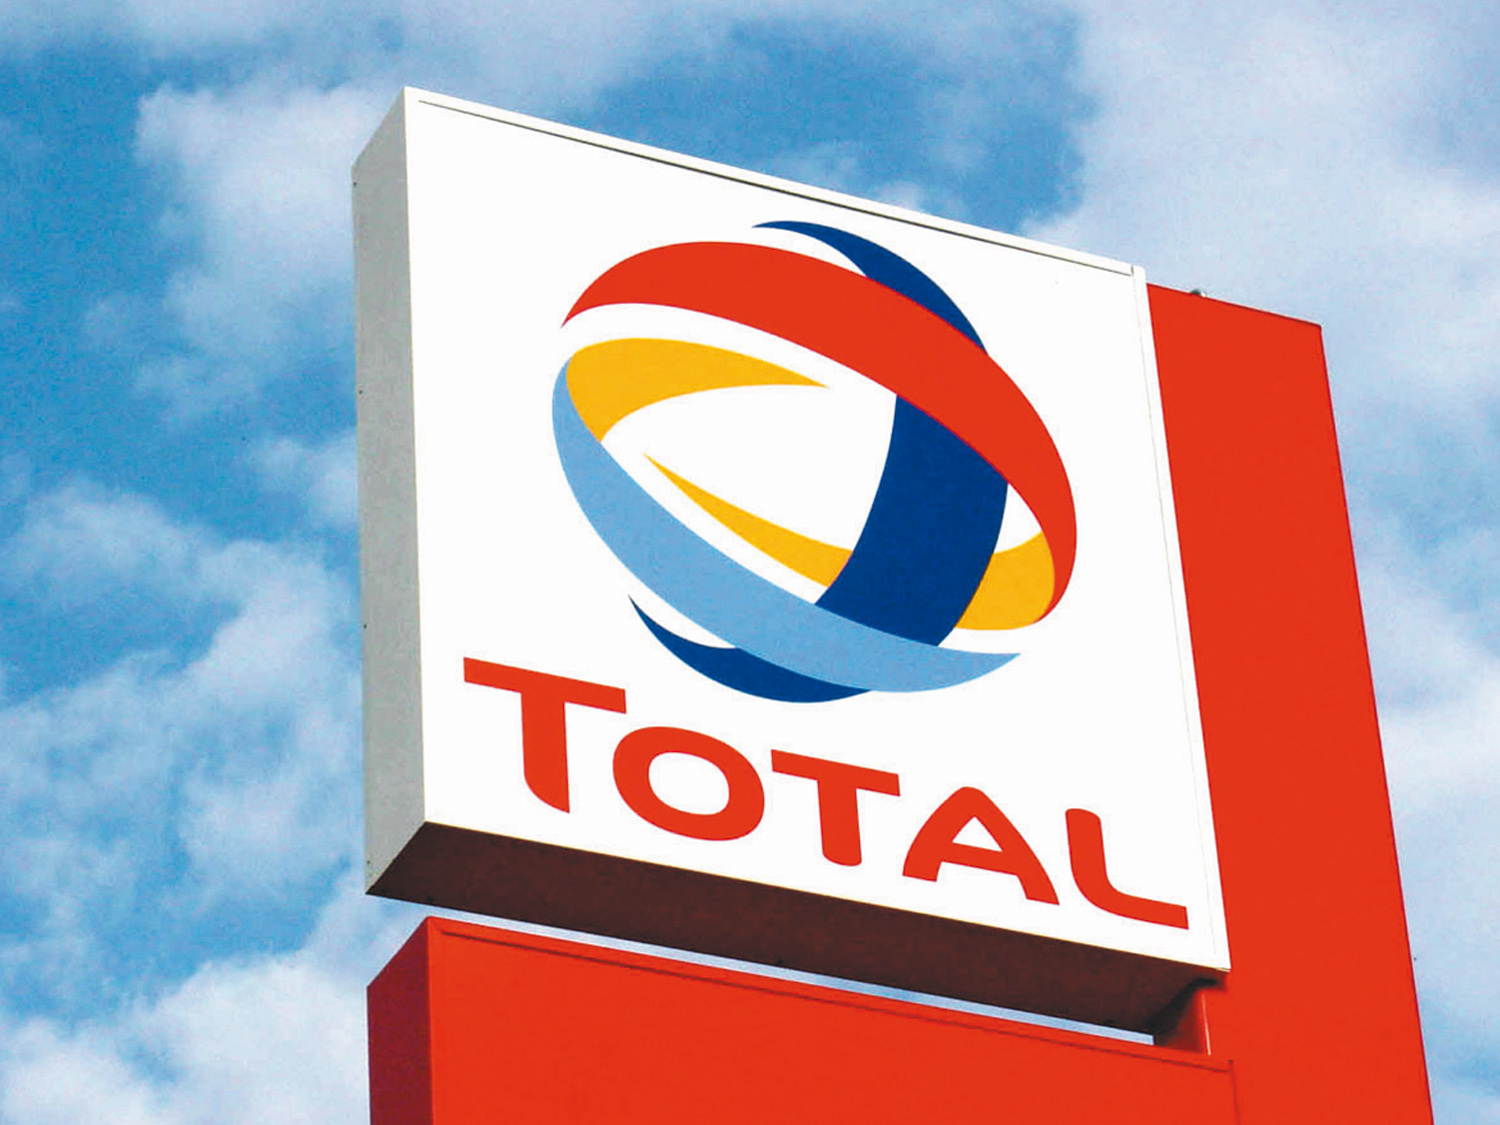 Total commits to net zero emissions through Climate Action 100+ investor engagement